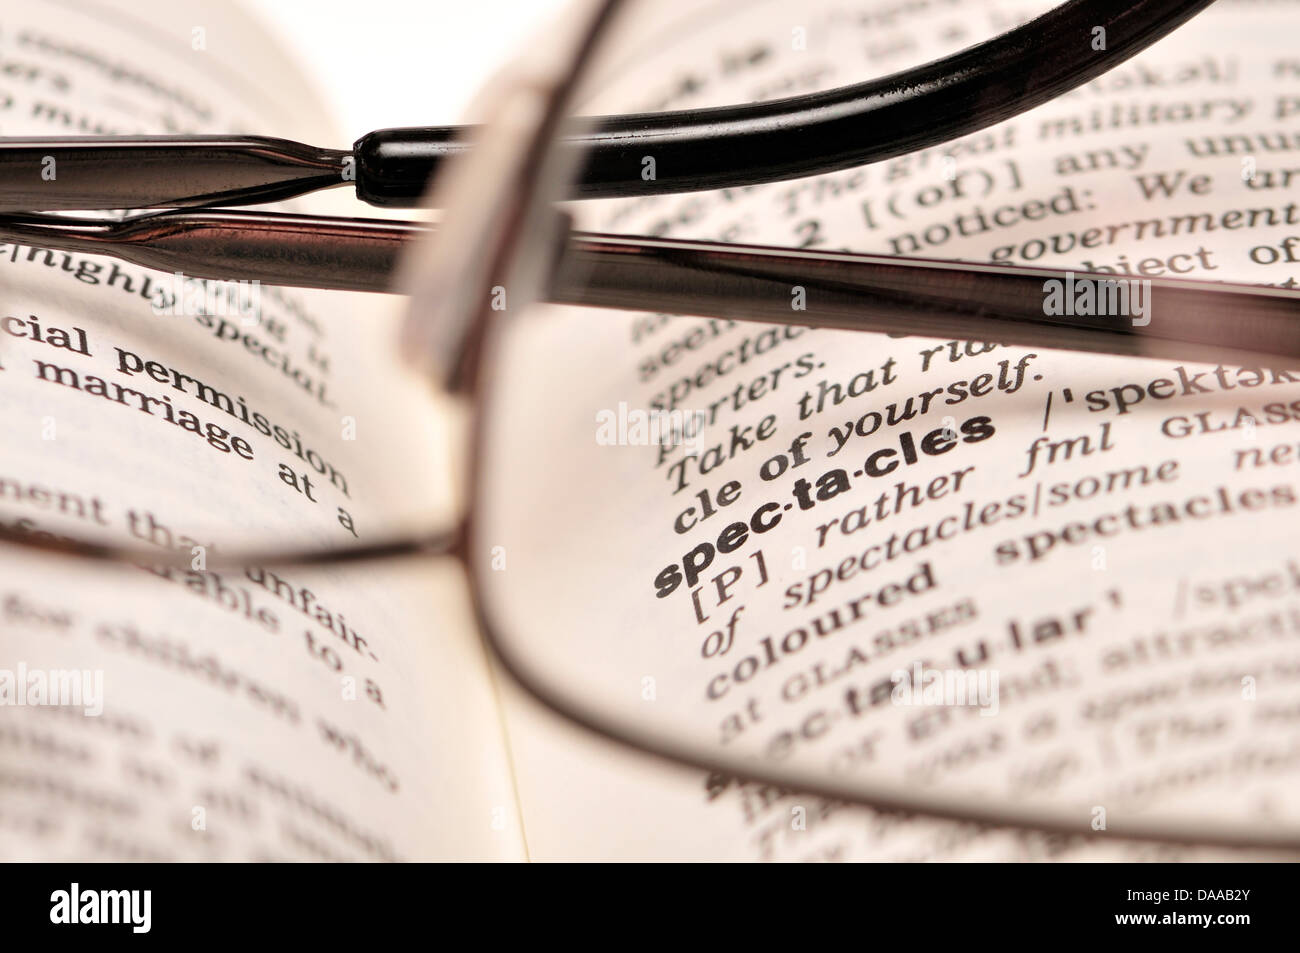 Pair of glasses on a dictionary open at 'spectacles' - Stock Image